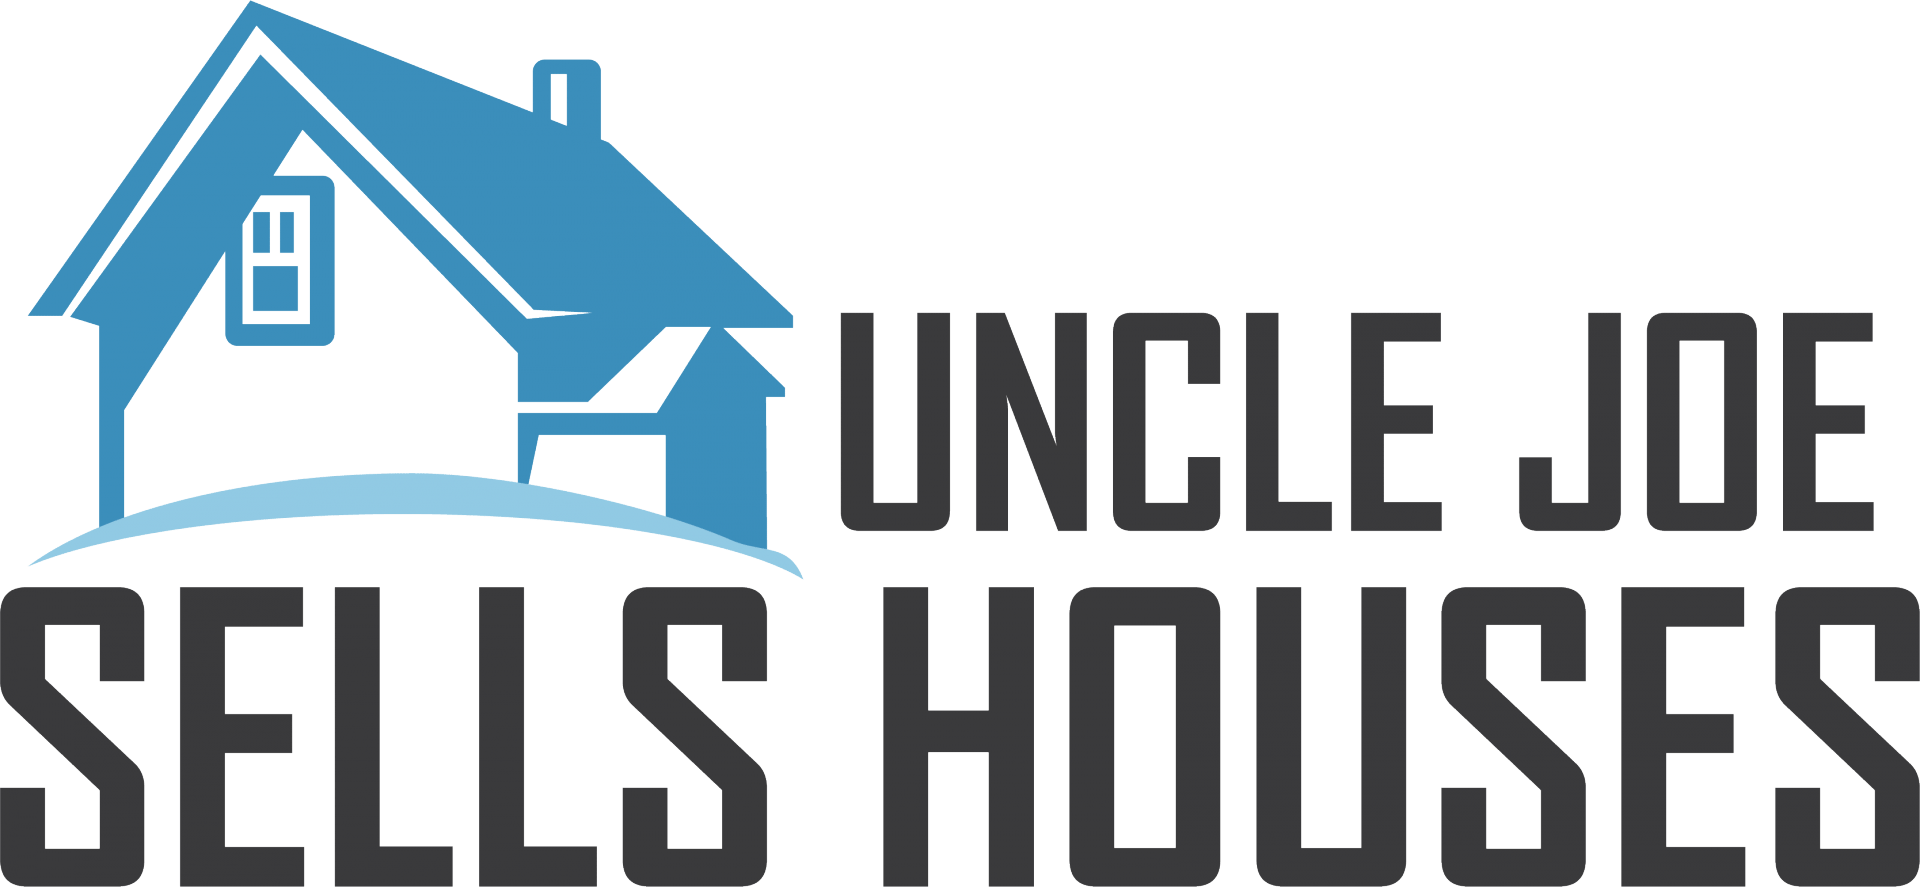 Uncle Joe Sells Houses logo